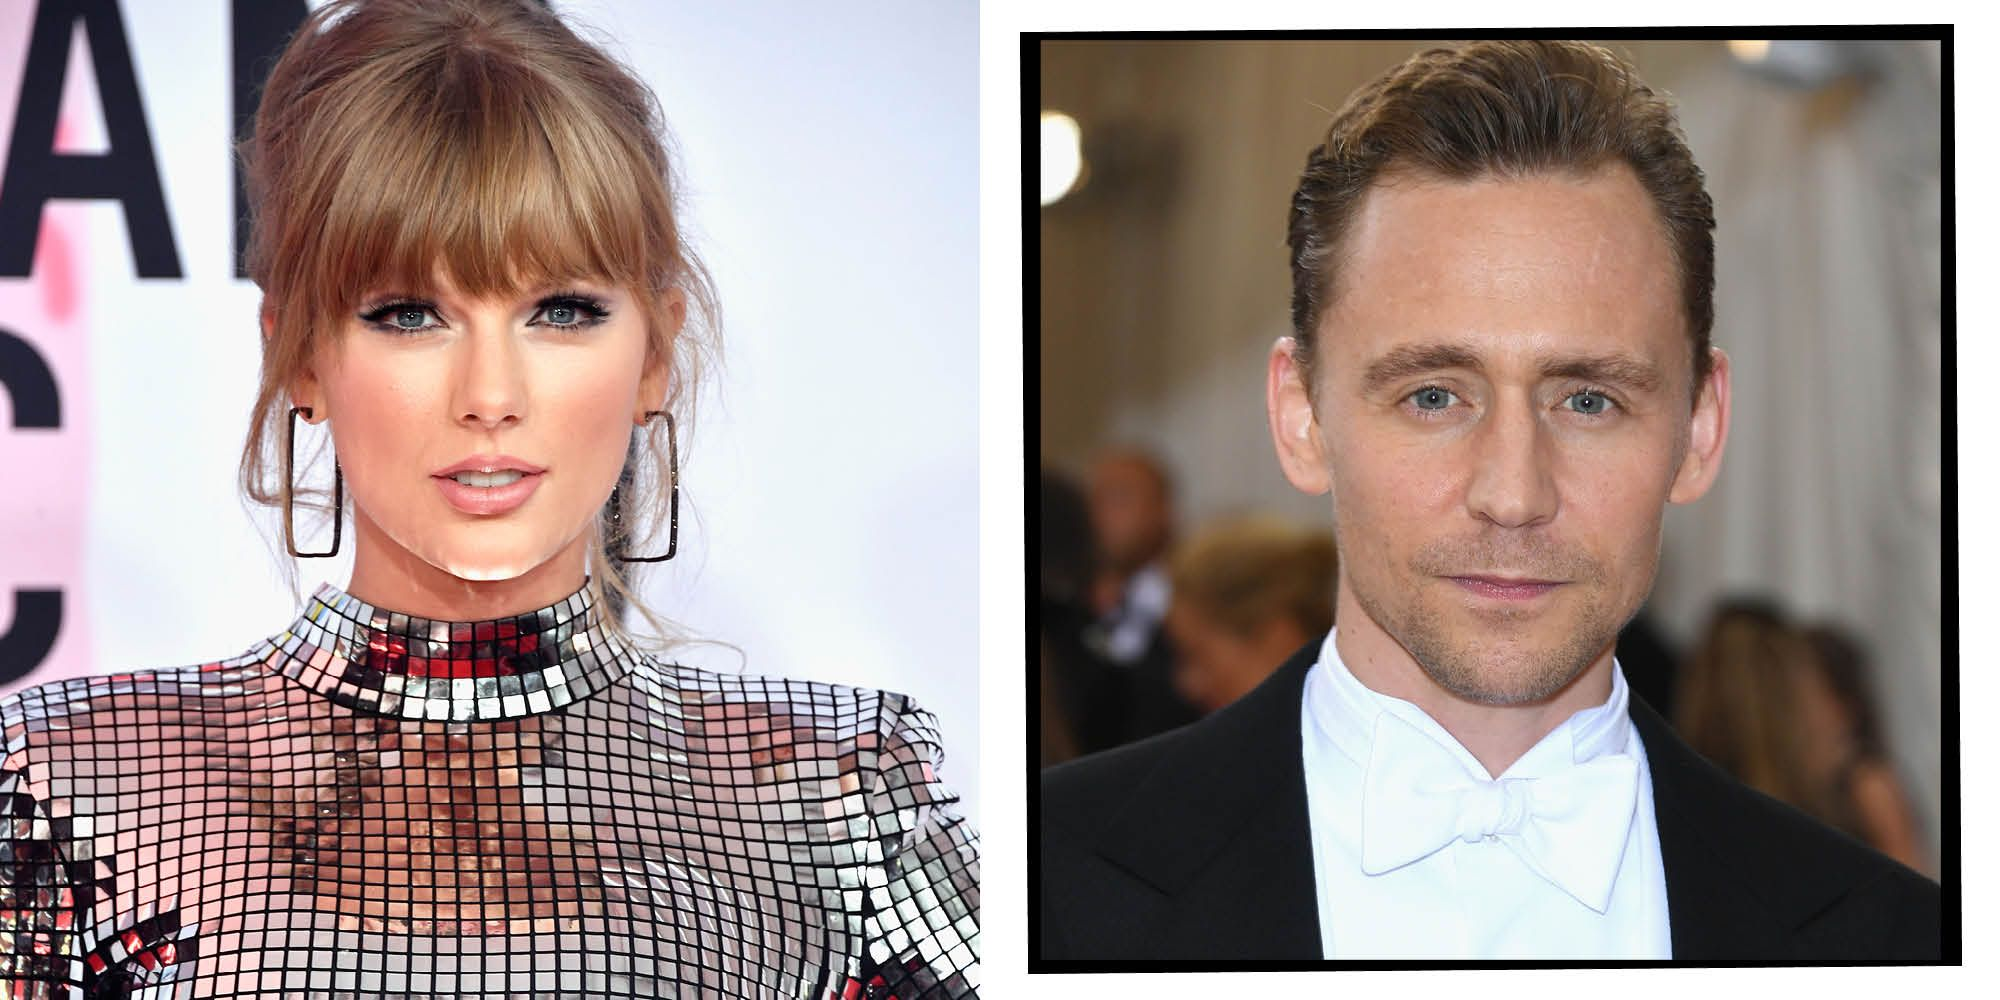 Tom Hiddleston Will Not Be Talking About Taylor Swift Anymore, Just FYI